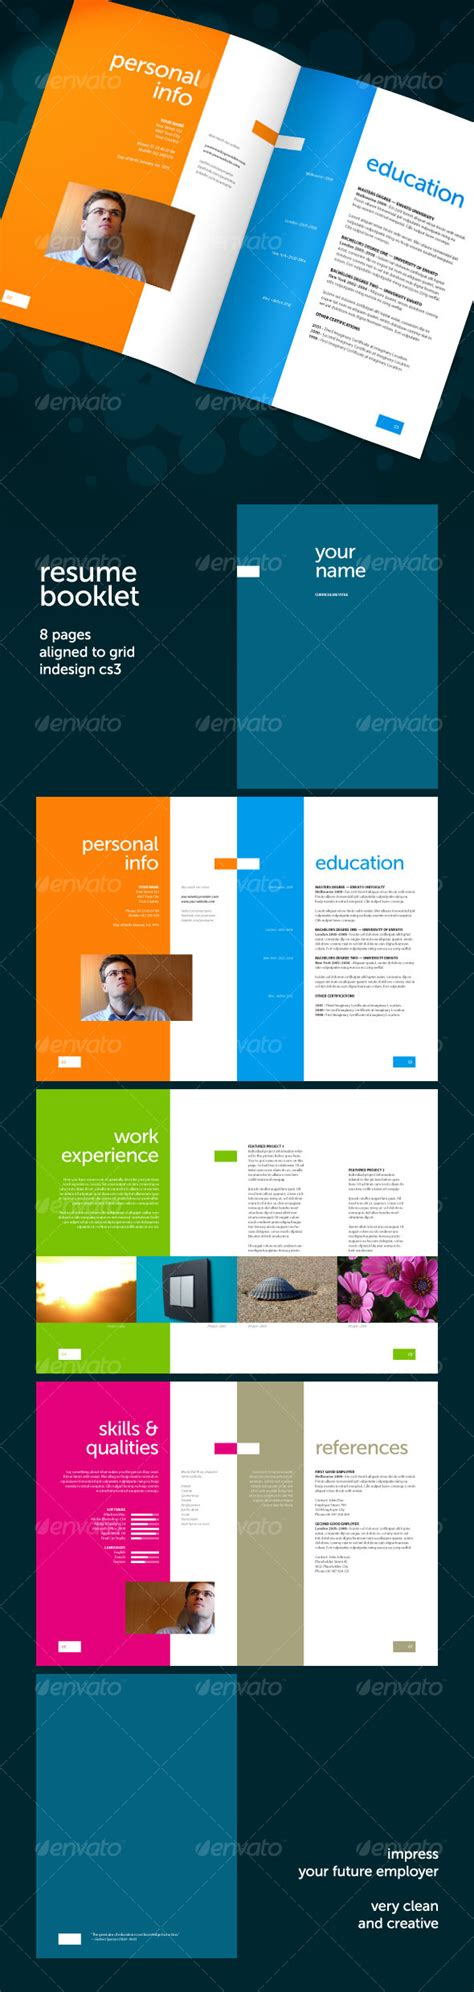 resume booklet 8 pages graphicriver